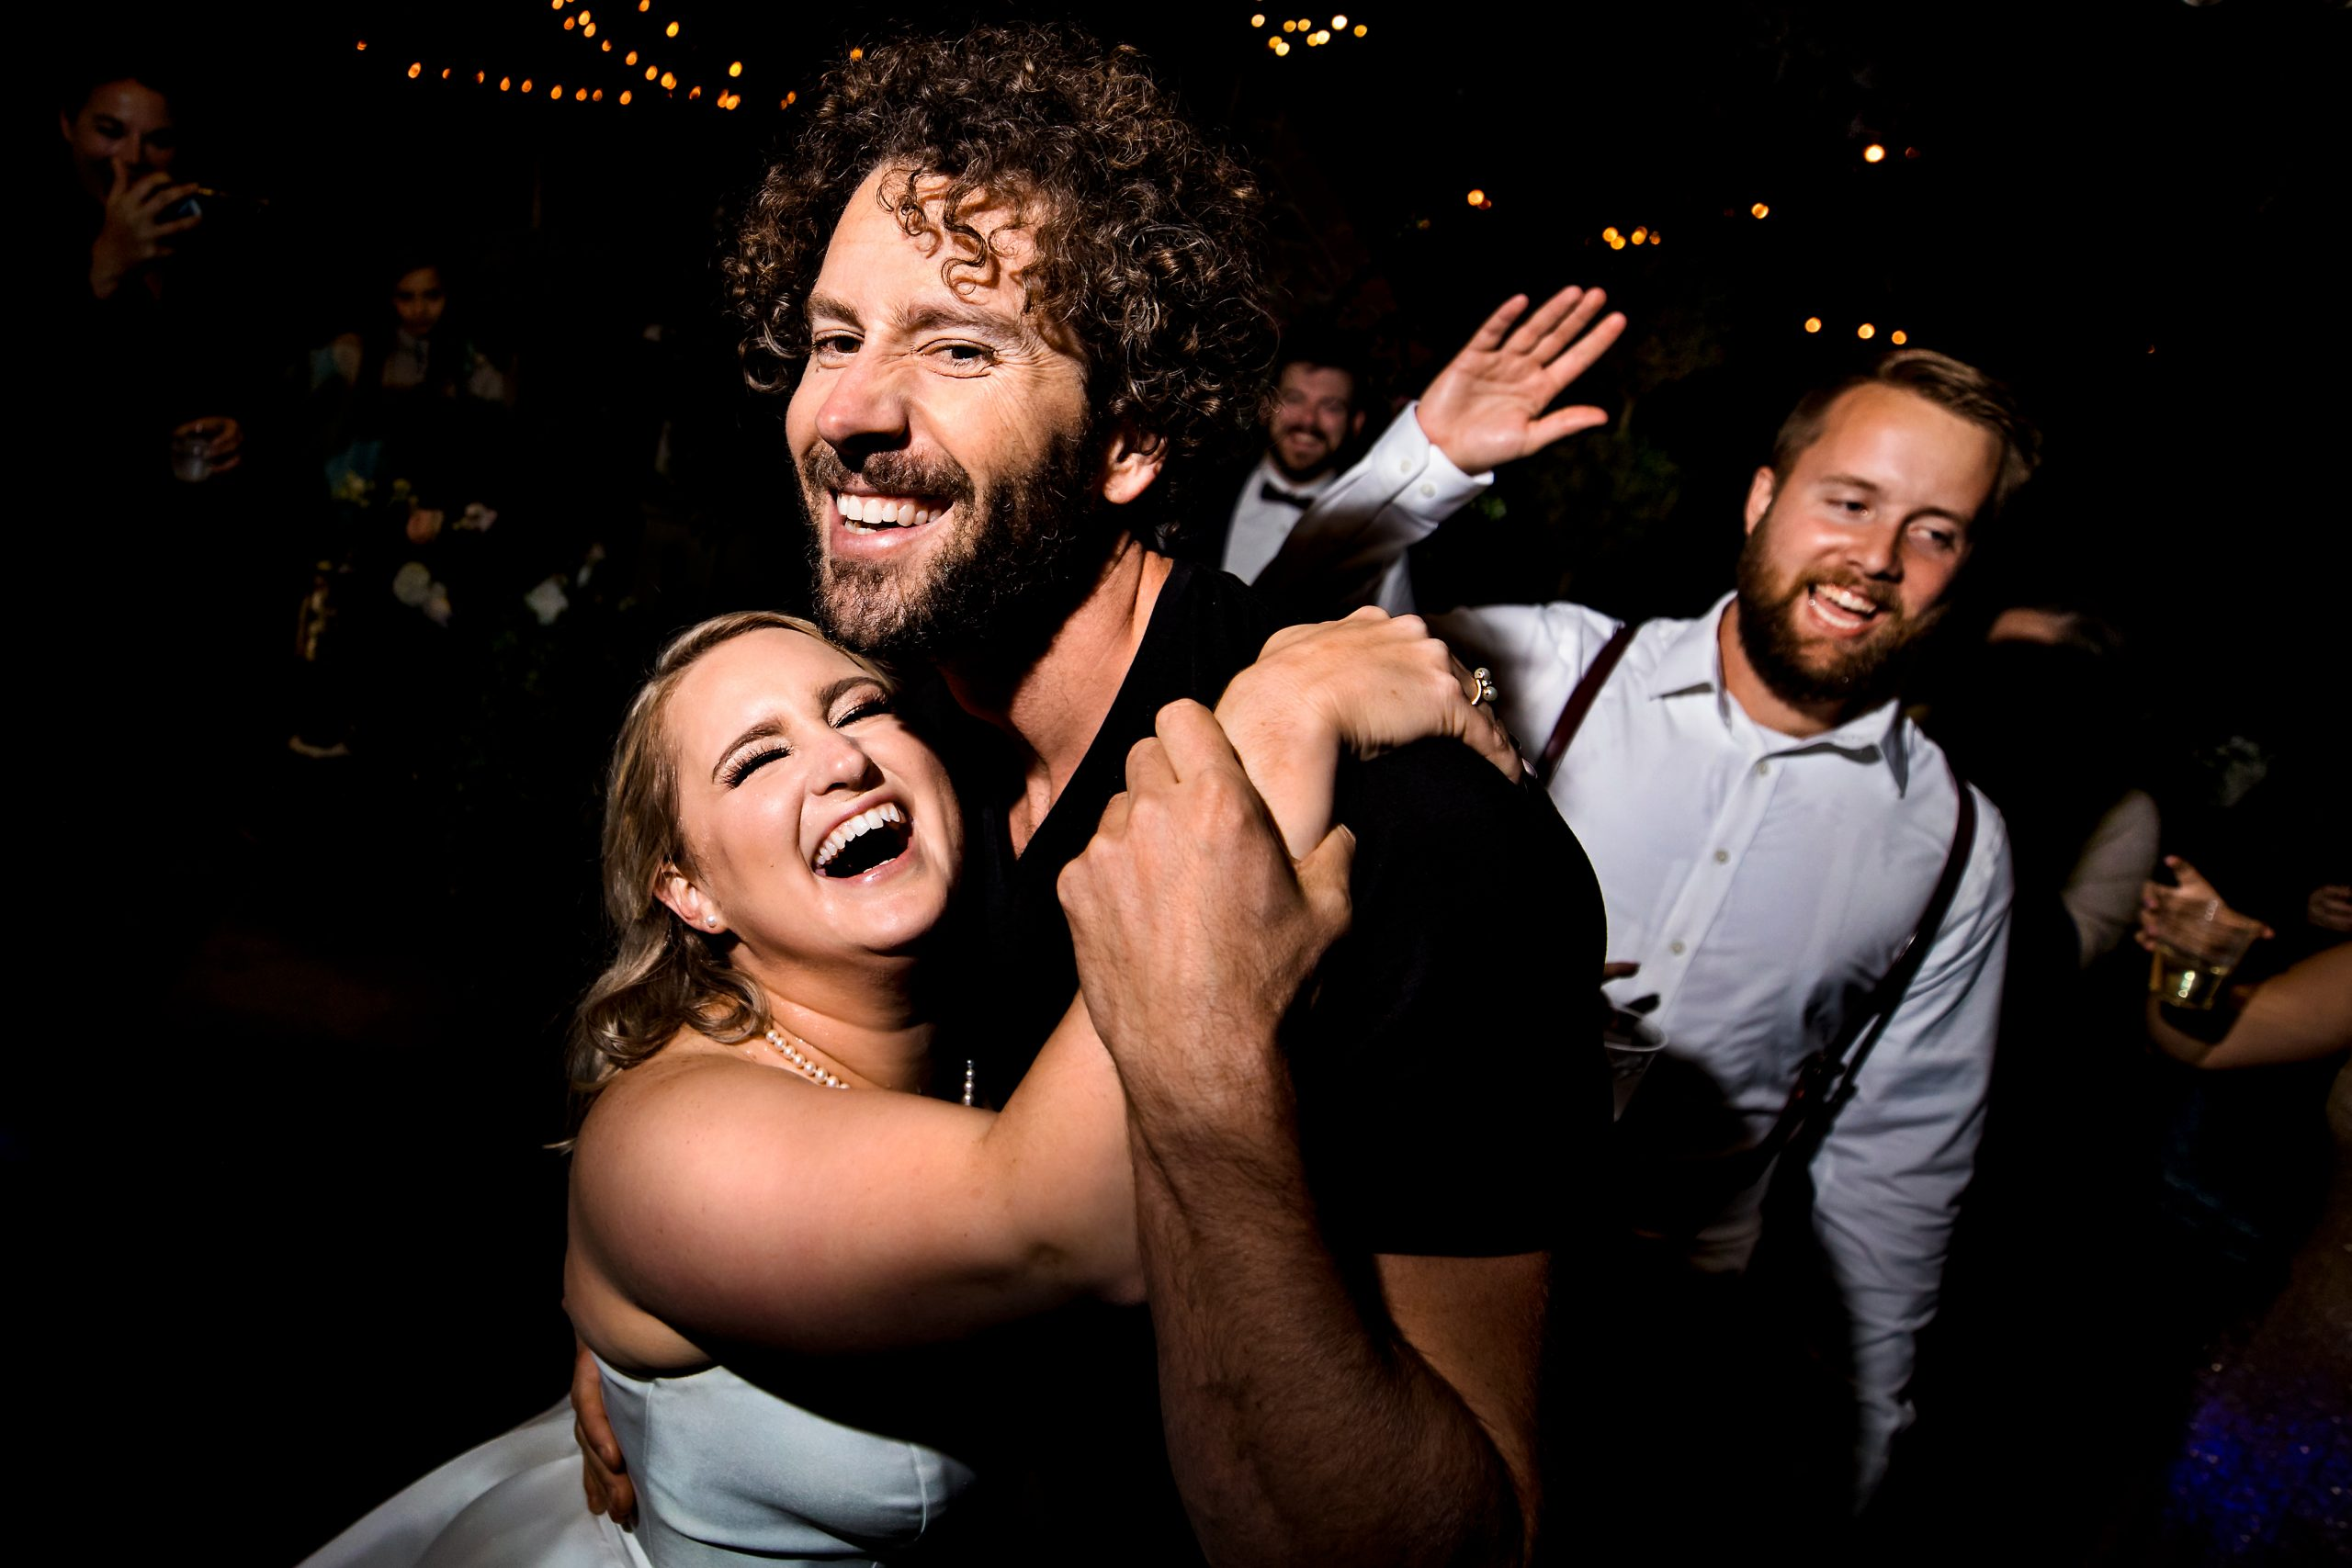 Hugs and smiles for the wedding photographers!